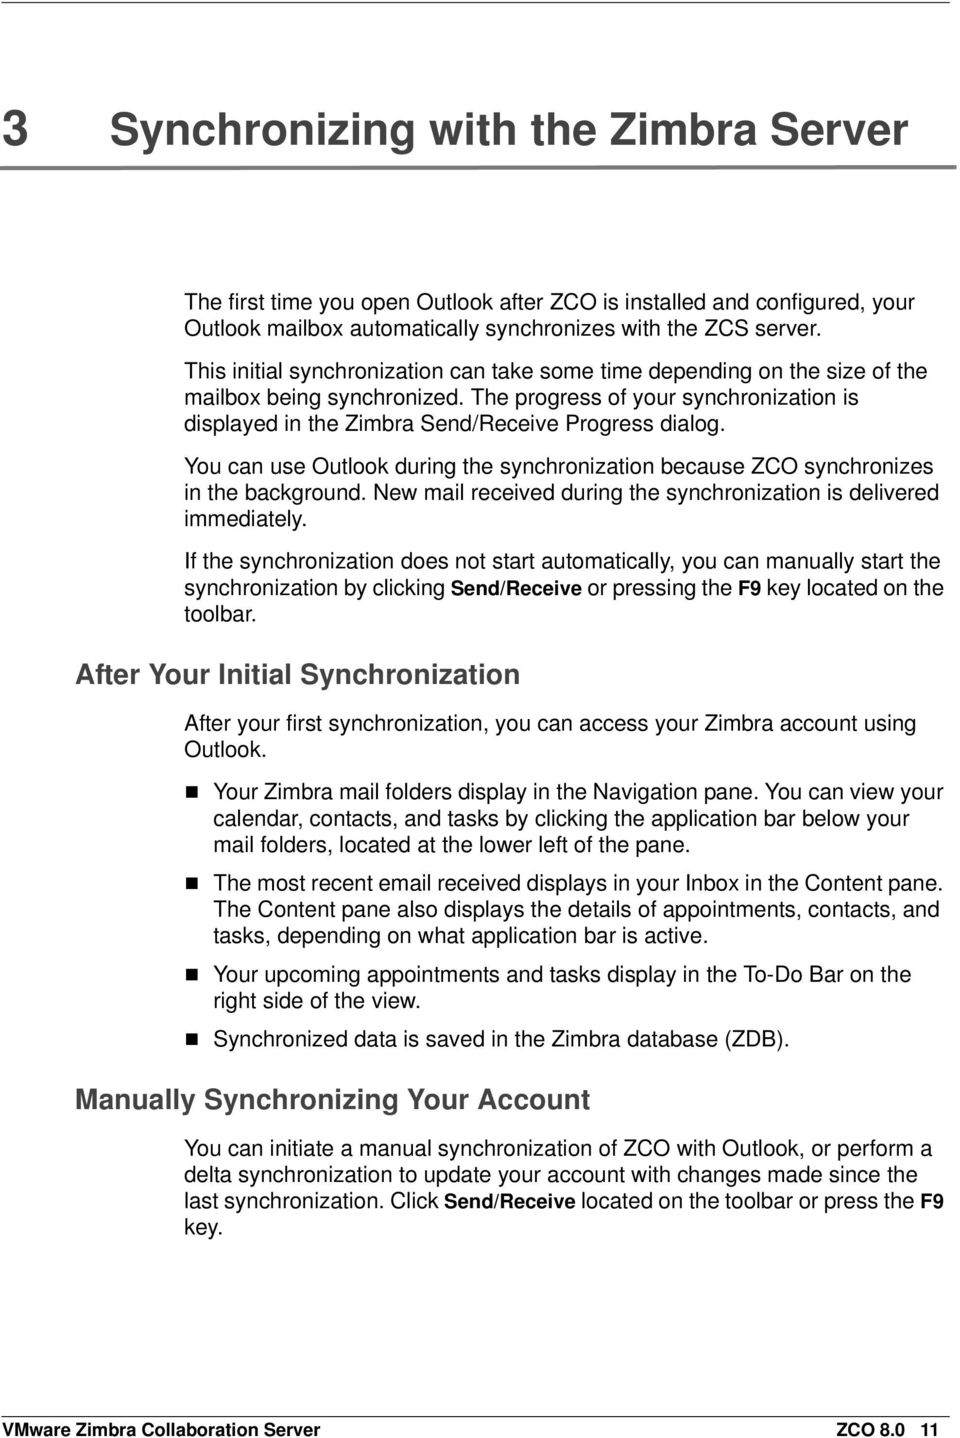 You can use Outlook during the synchronization because ZCO synchronizes in the background. New mail received during the synchronization is delivered immediately.